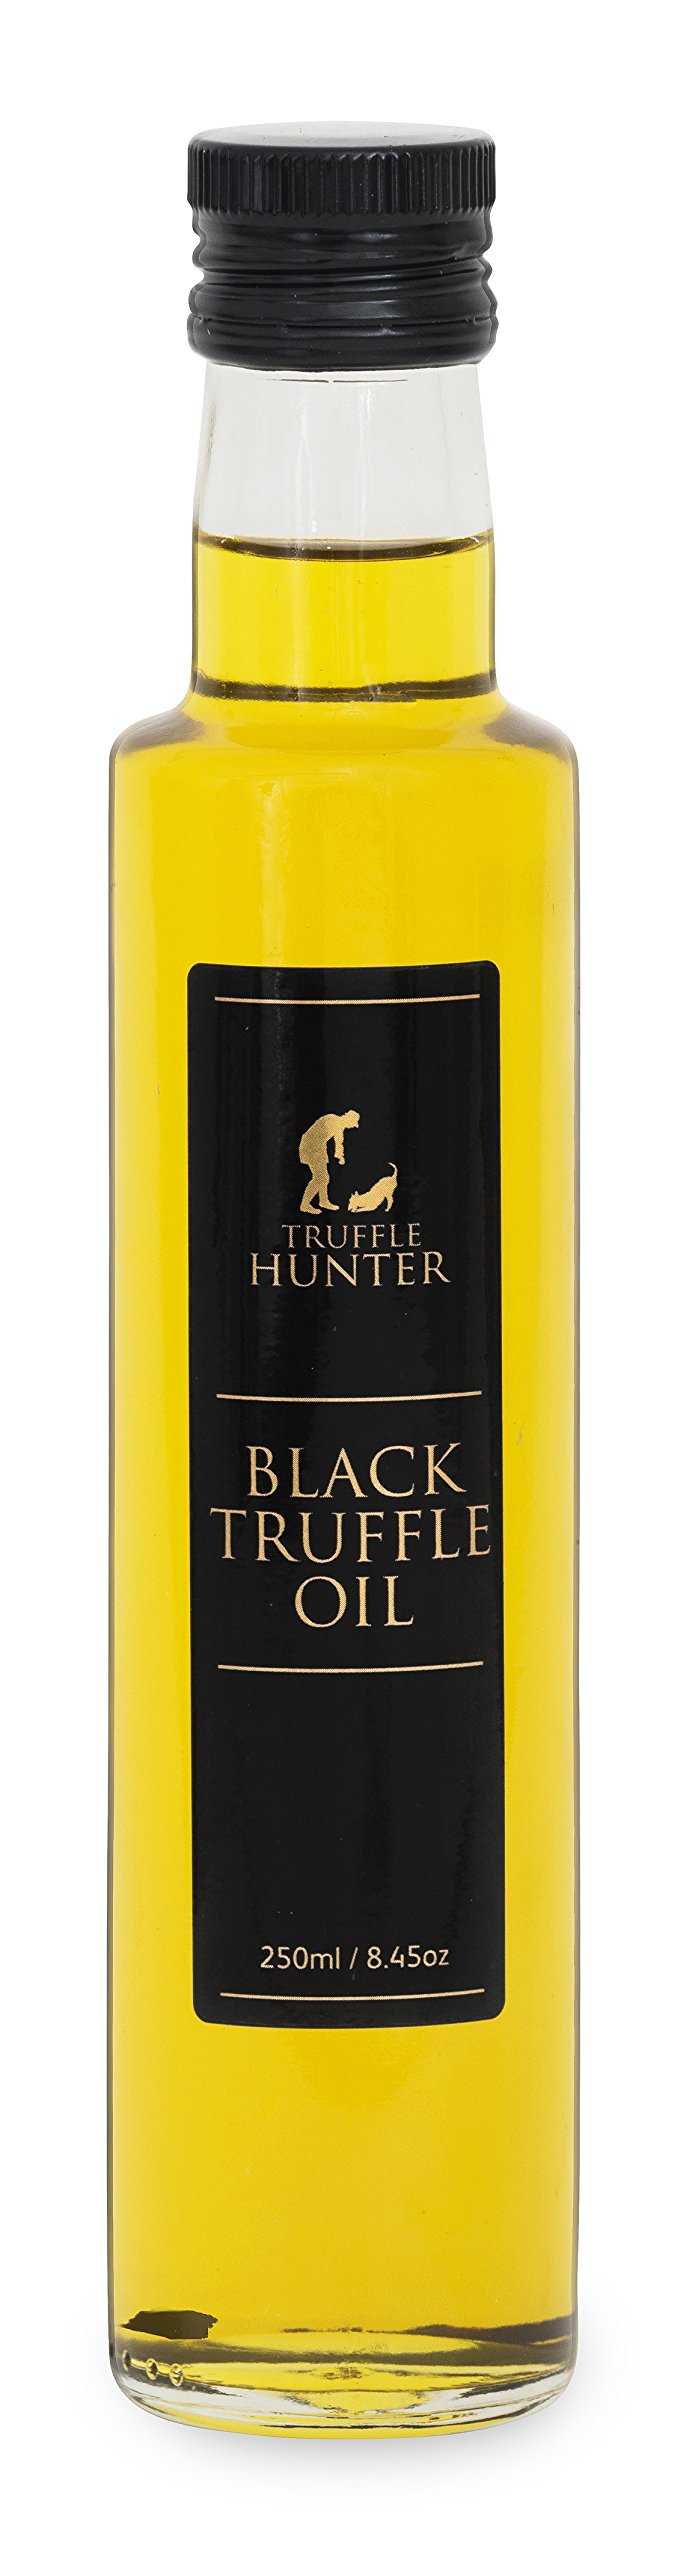 TruffleHunter Chef's Black Truffle Oil - 8.45 Oz (Double Concentrated)